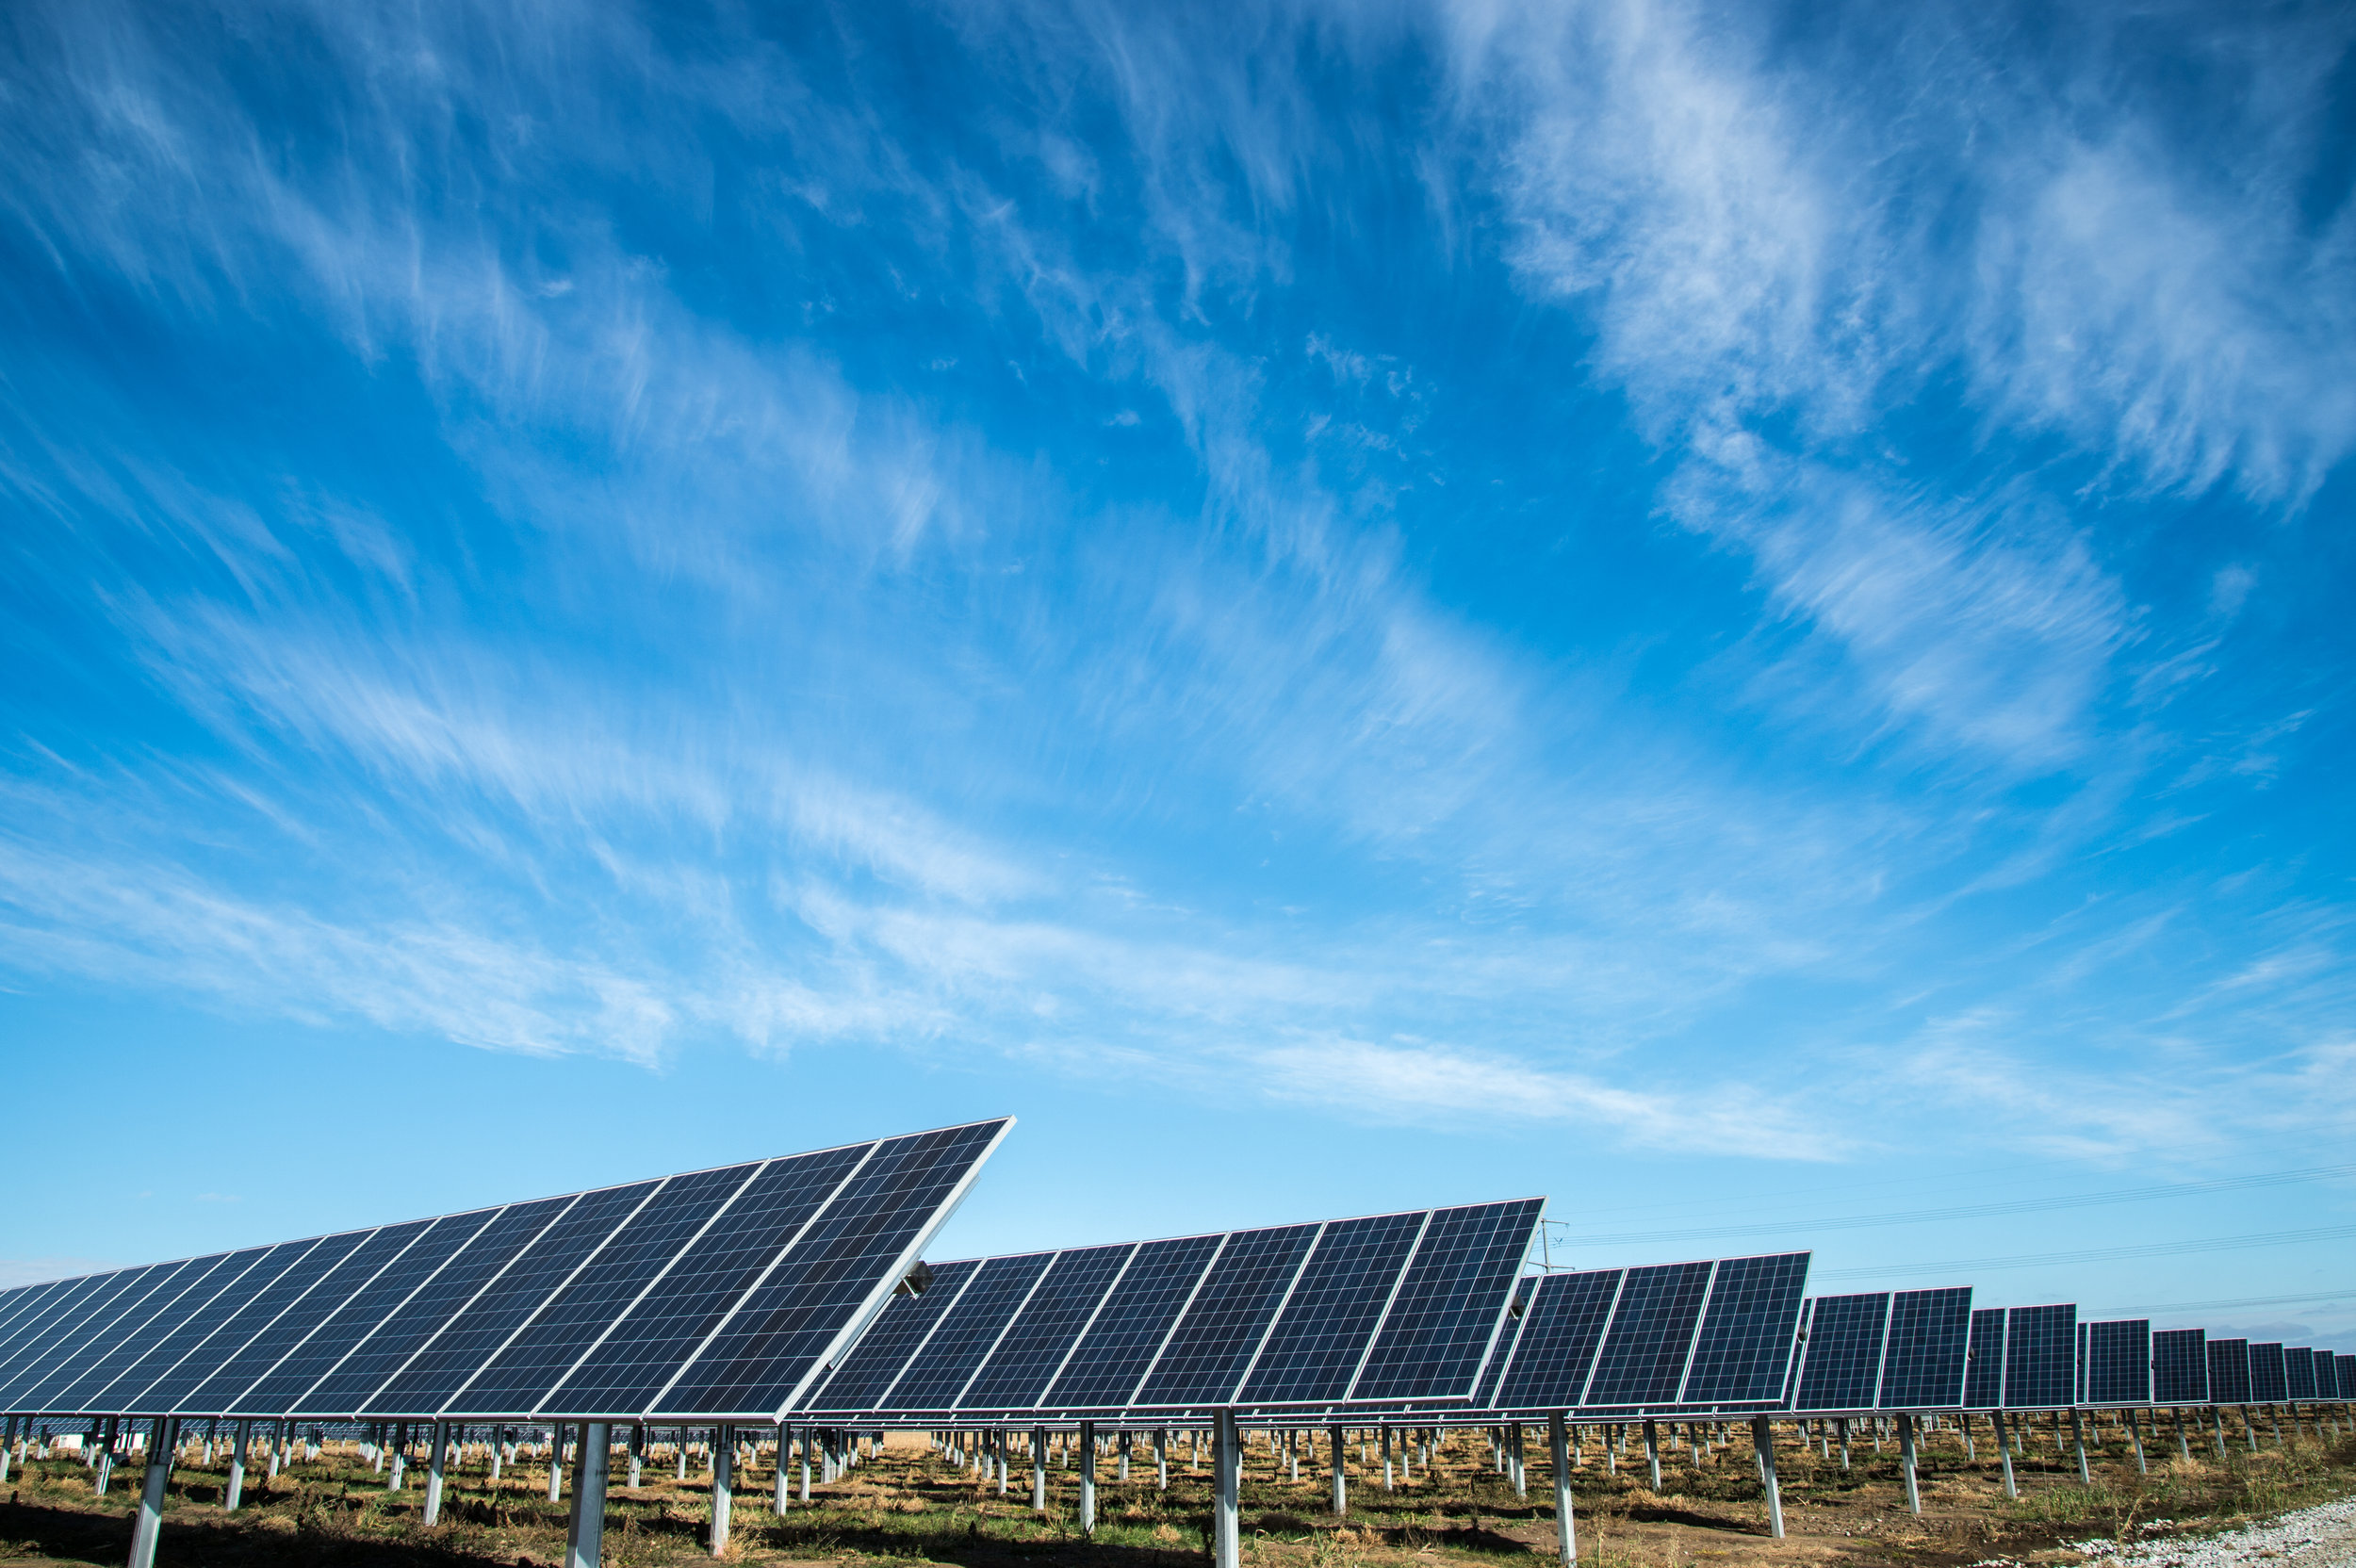 Solar farm in East Africa supported in part by Liquidnet for Good impact investing